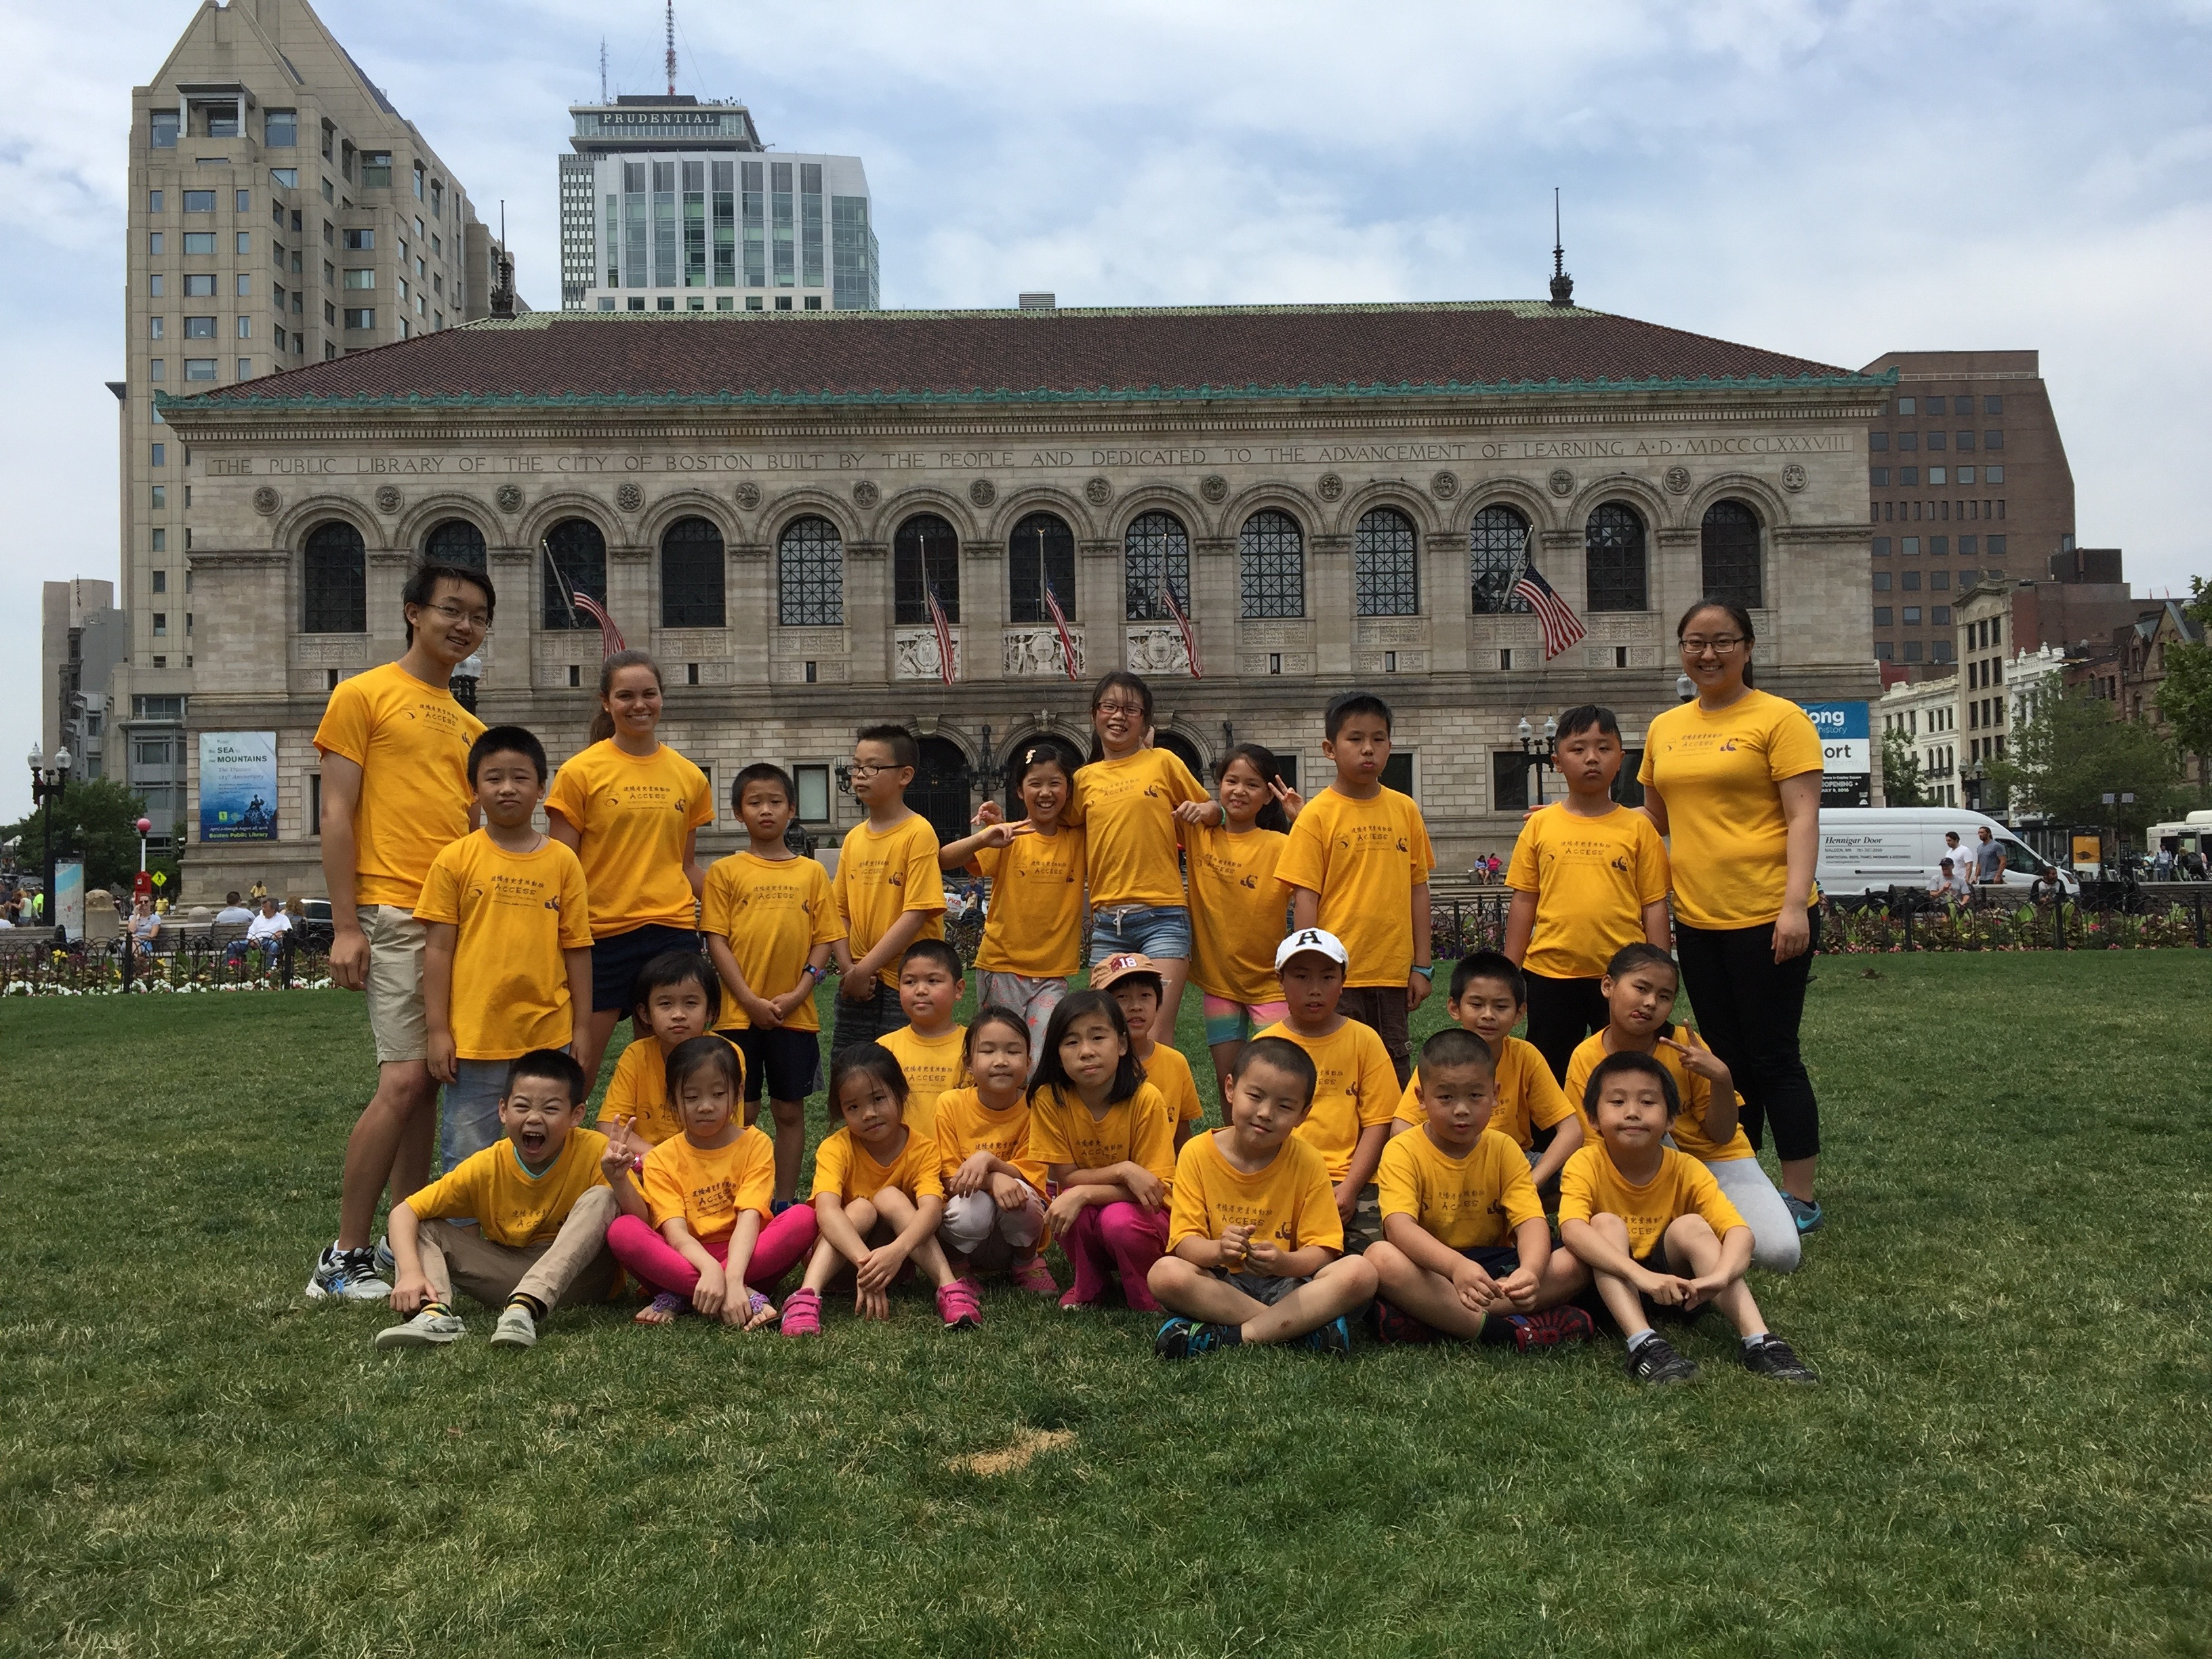 Visiting Copley Square